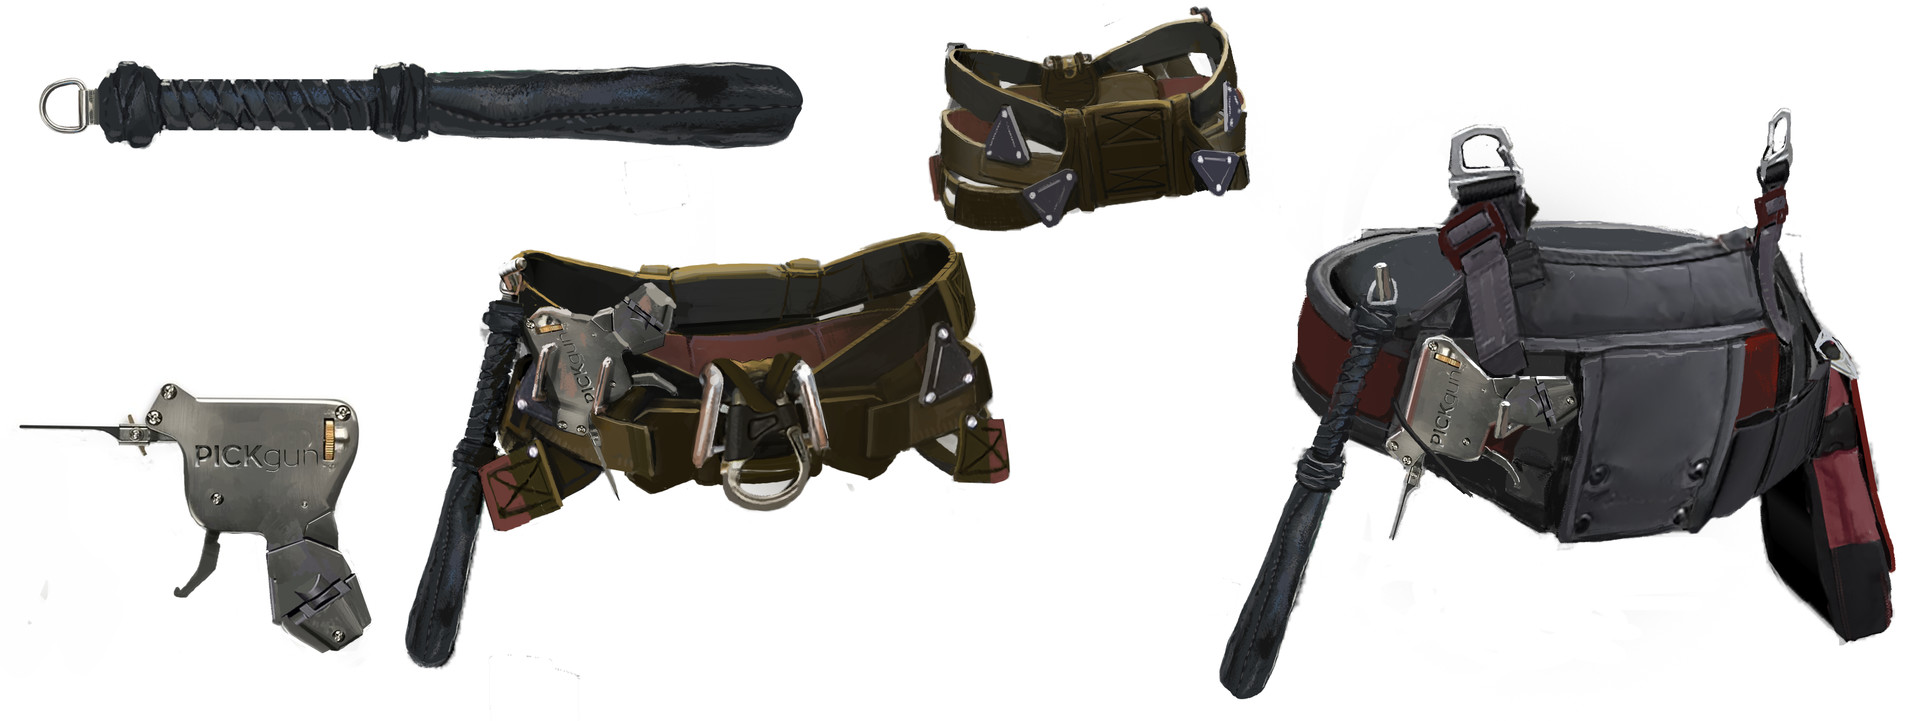 Phoebe herring infiltrator equipment